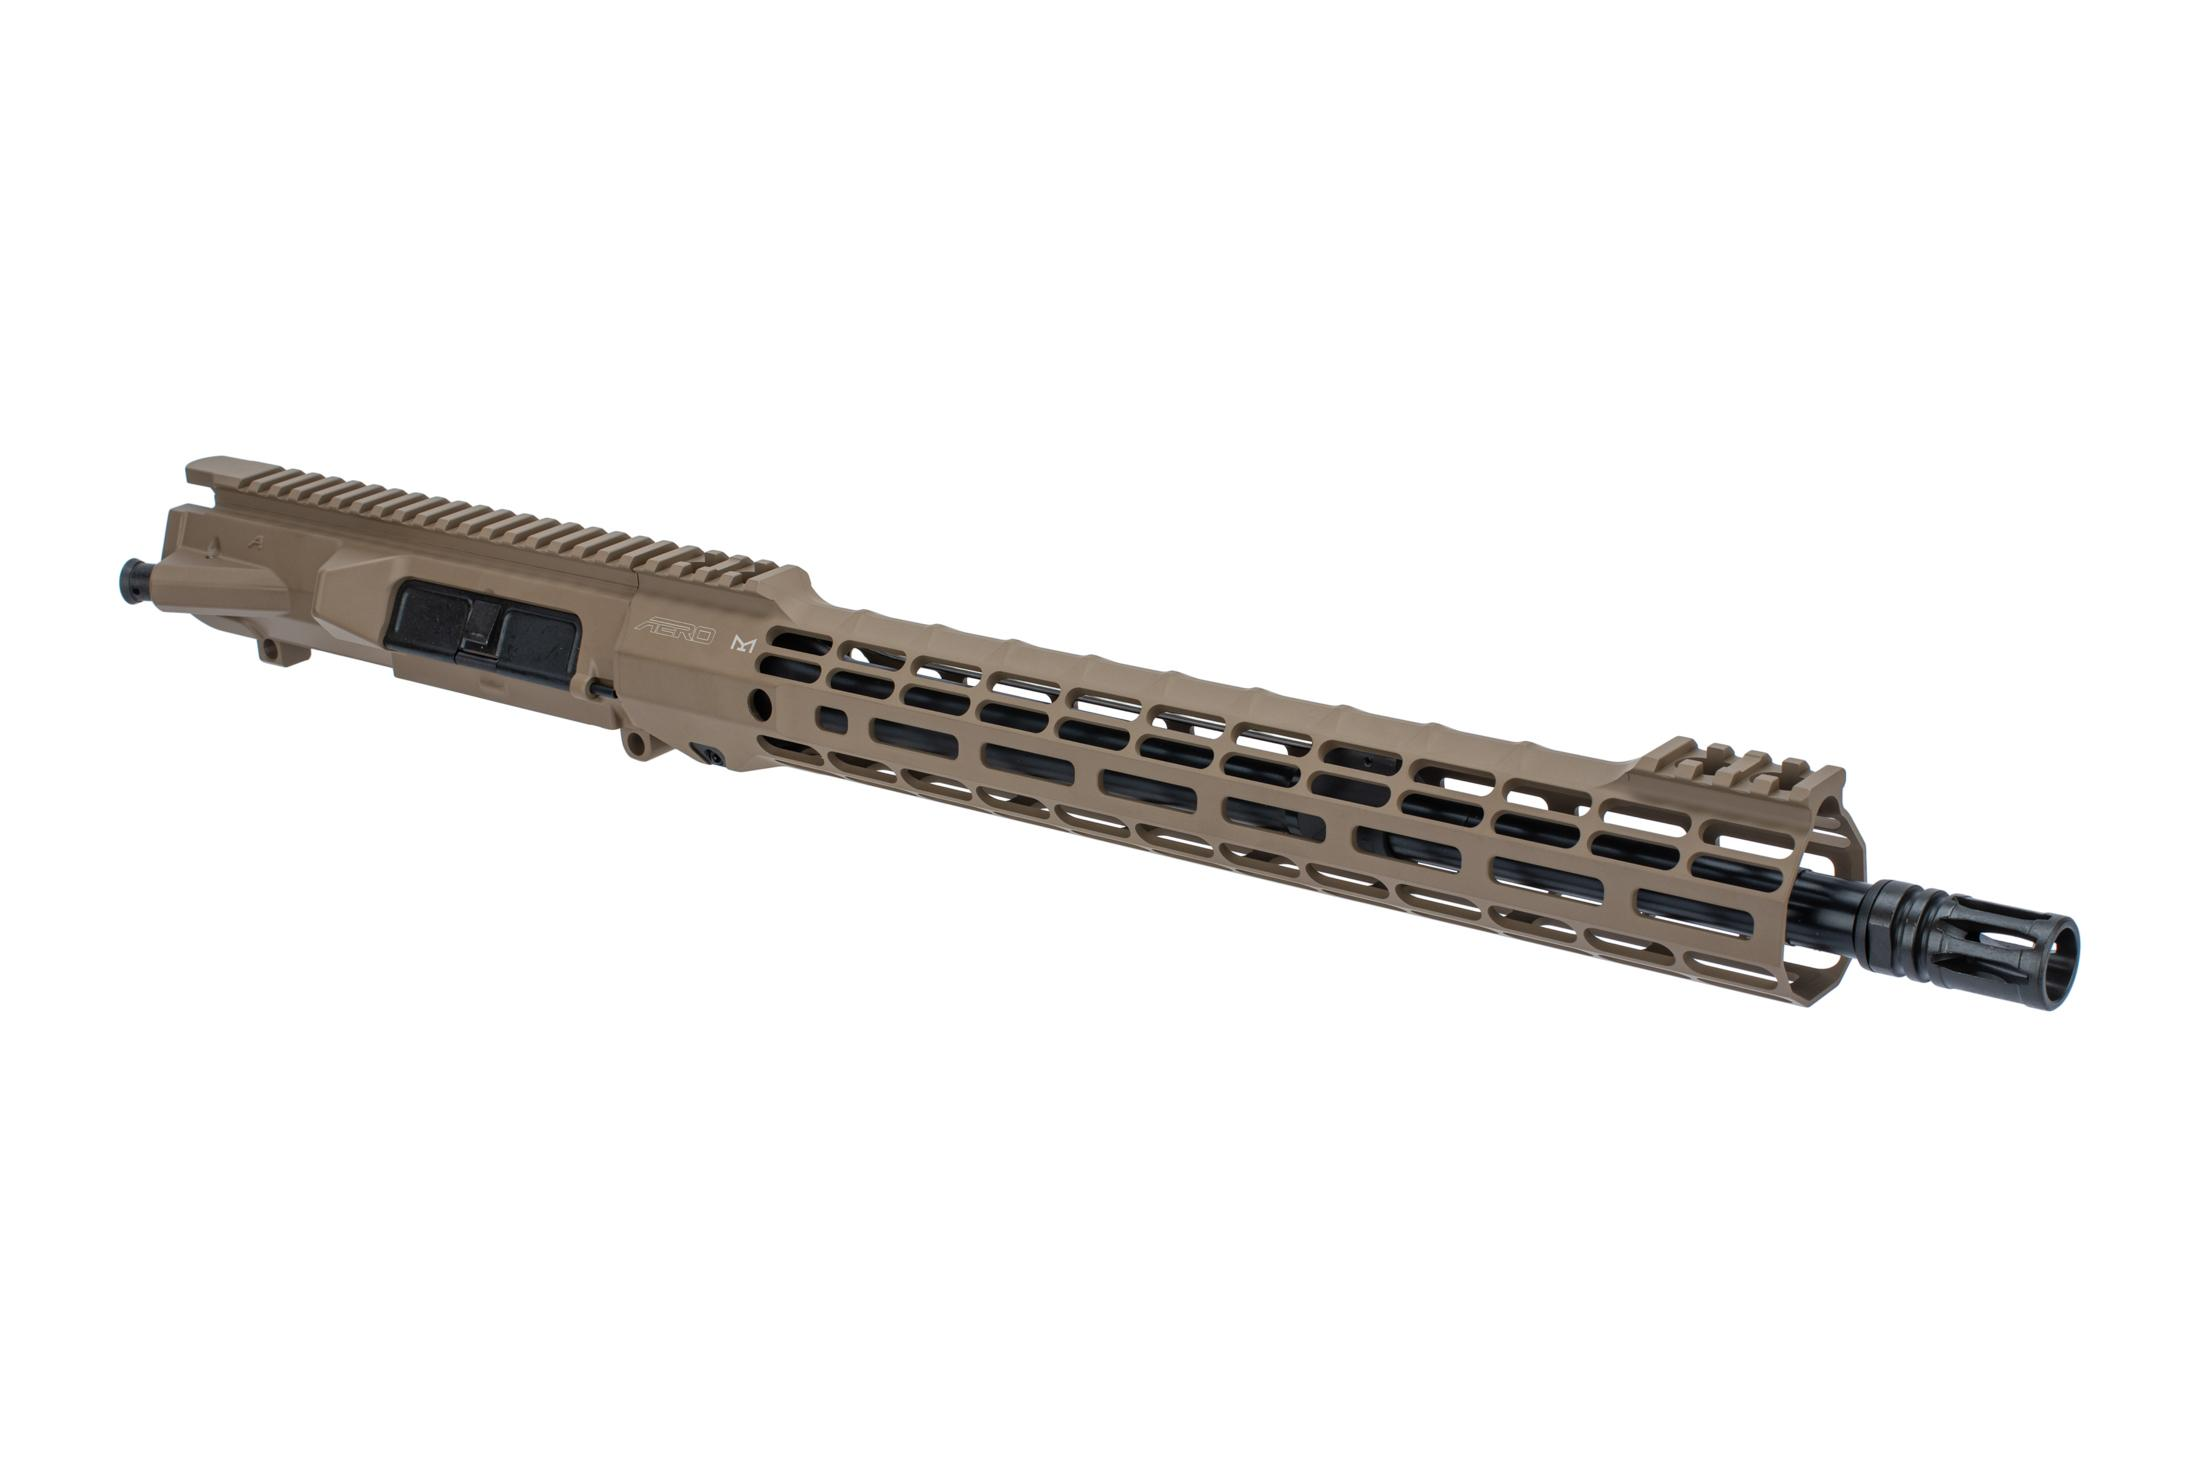 Aero Precision M5 barreled upper receiver with .308 chamber mid-length gas system and Atlas S-ONE FDE handguard